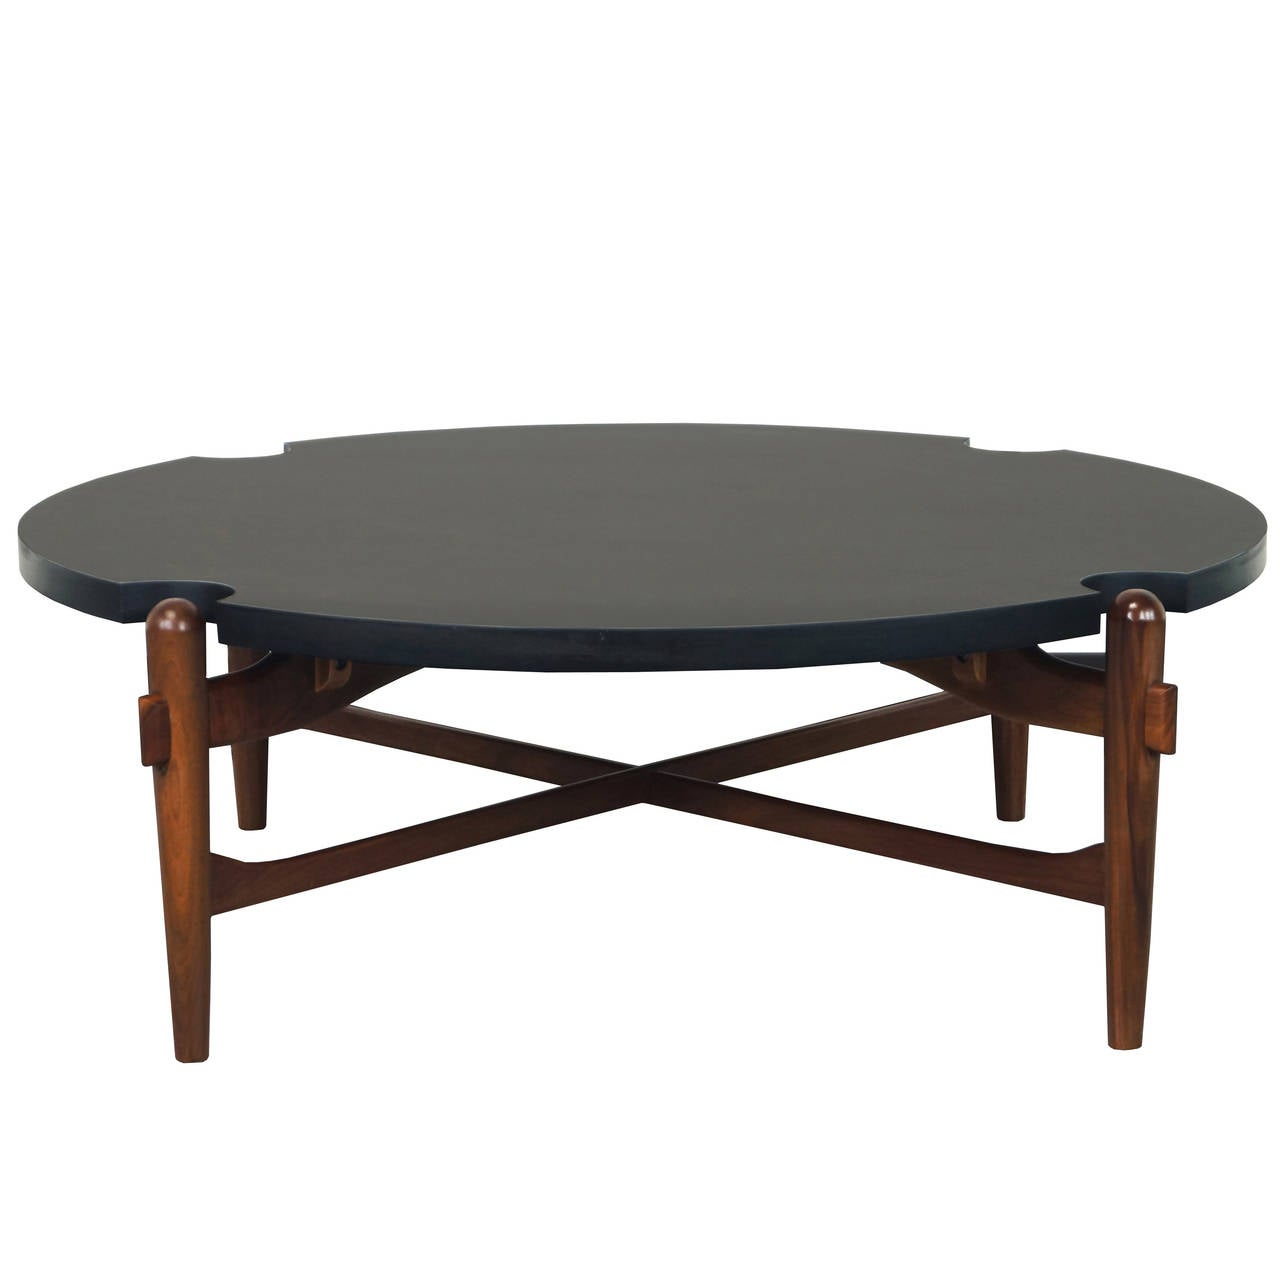 Vintage Coffee Table Attributed to Greta Grossman at 1stdibs